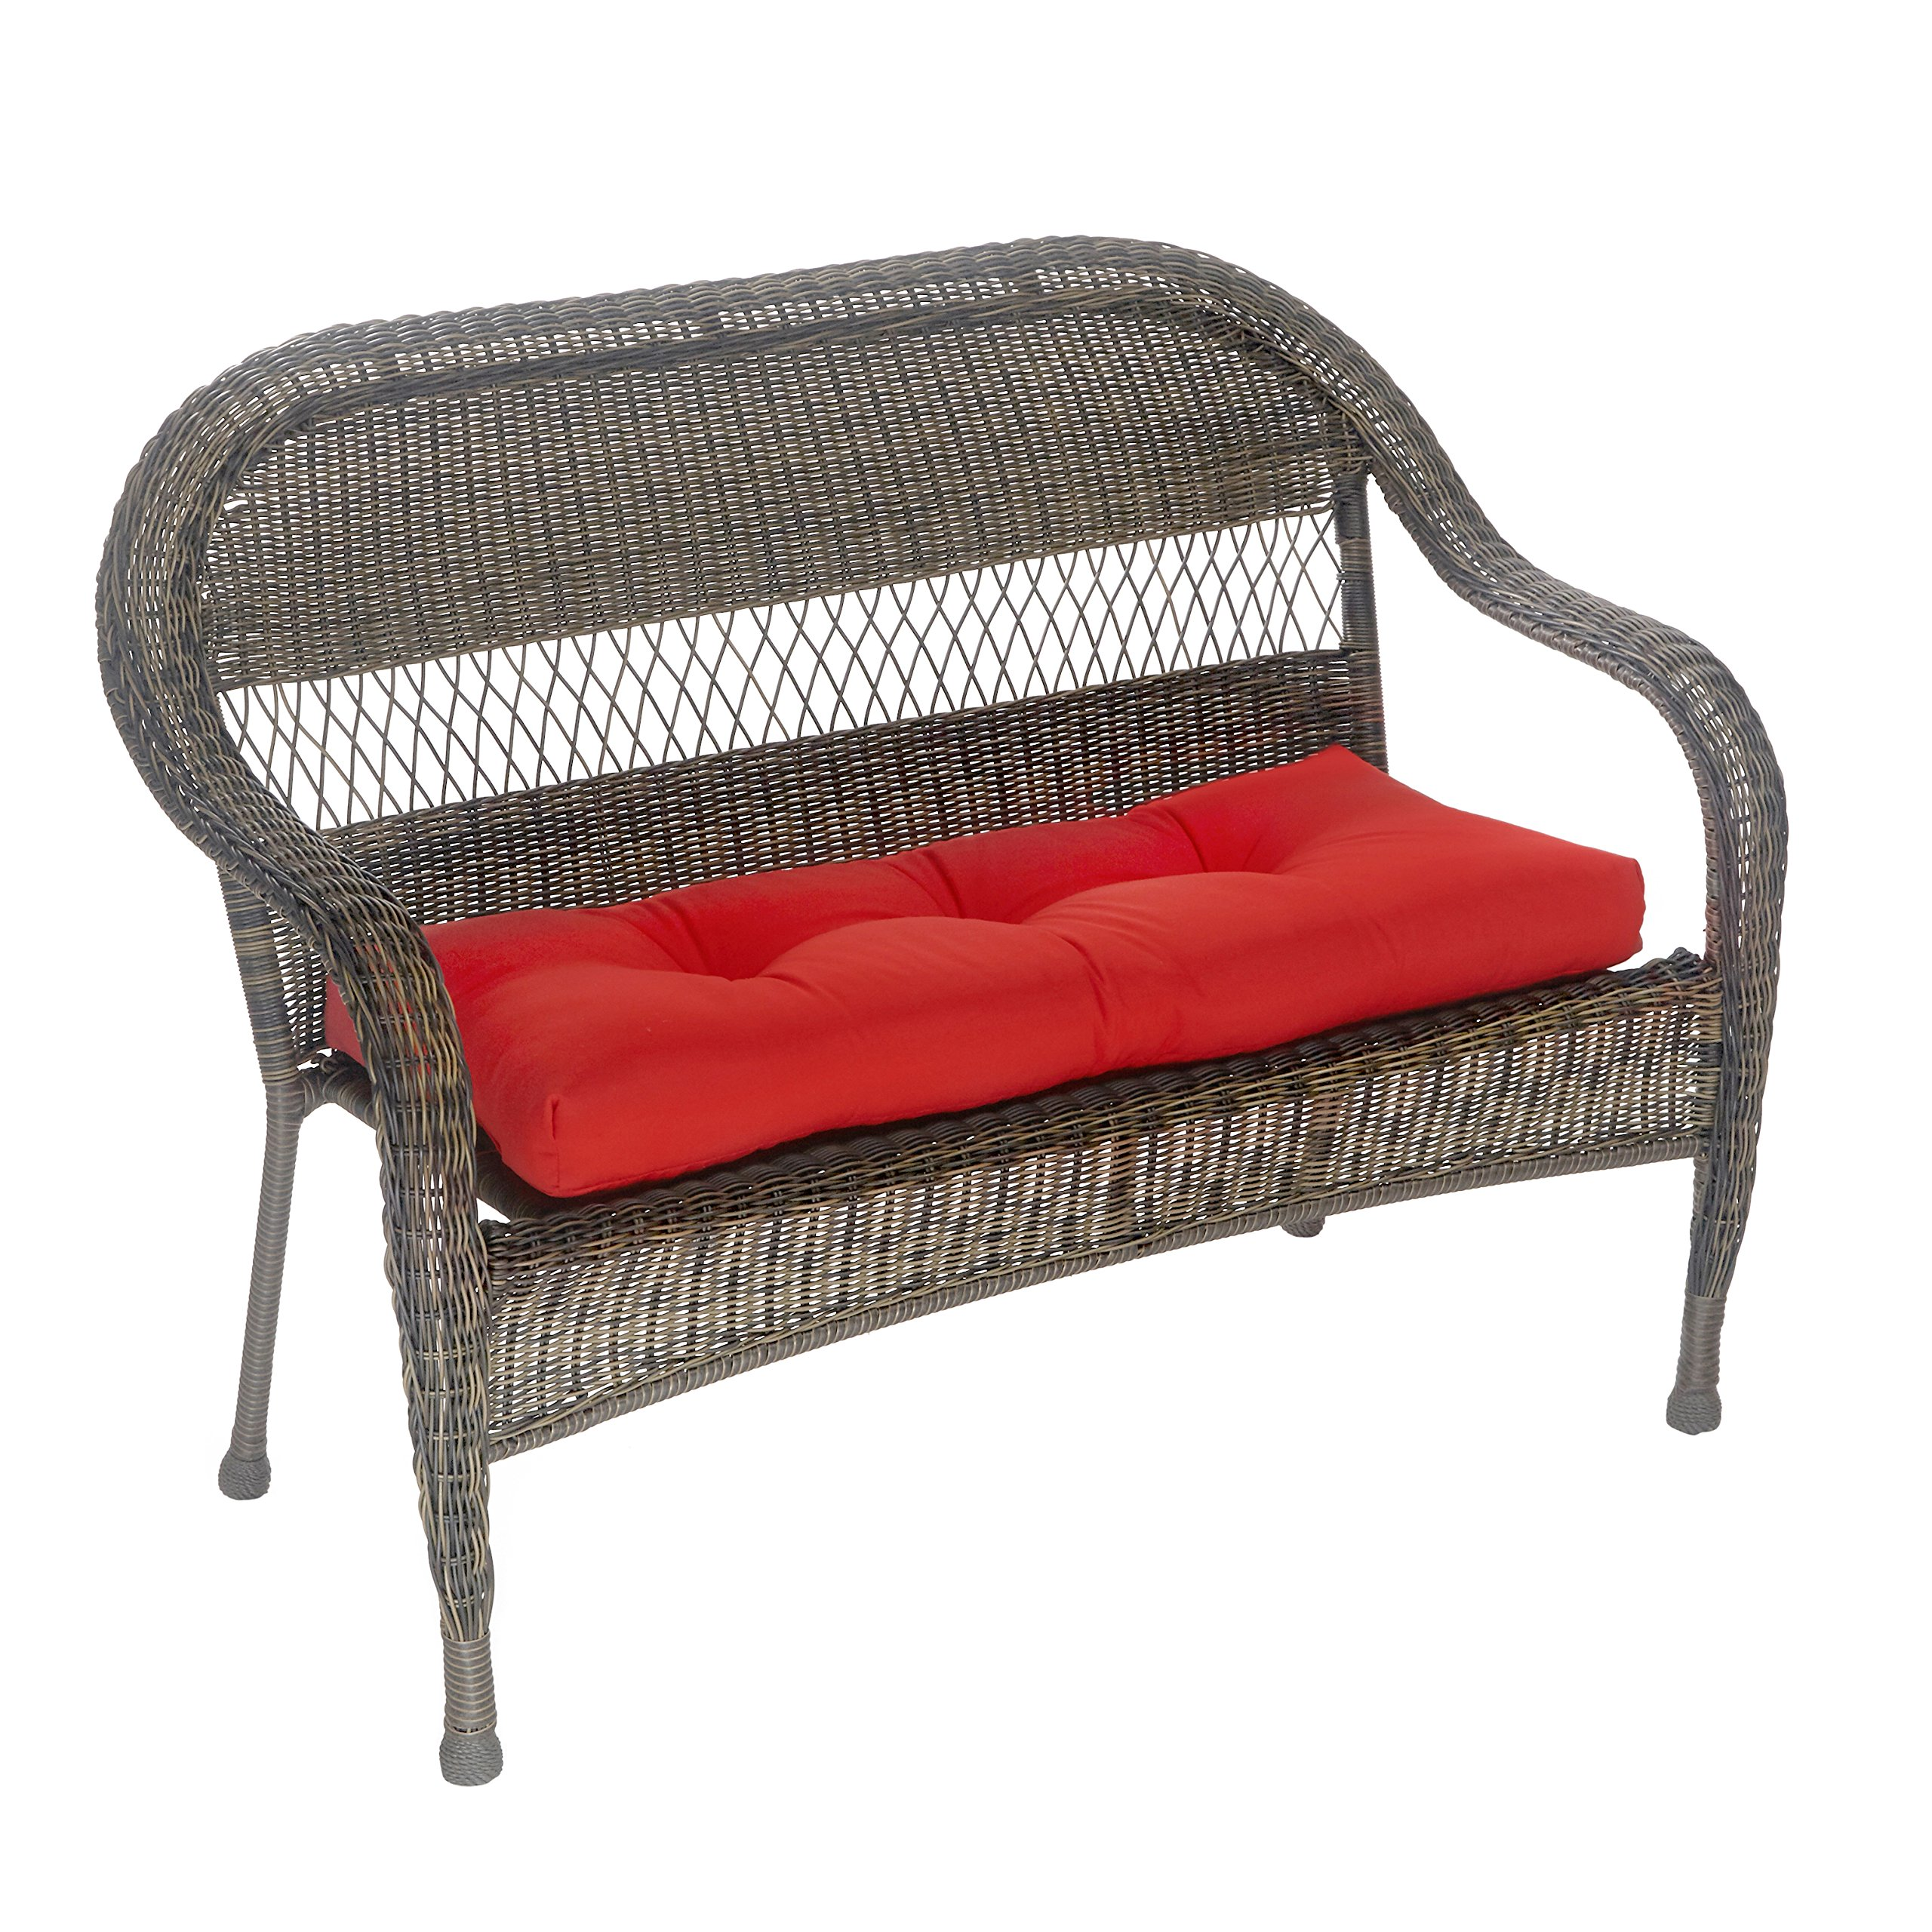 Outdoor Patio Bench Cushion - Solid and Patterns - 43 x 19 x 3 (Solid Red)